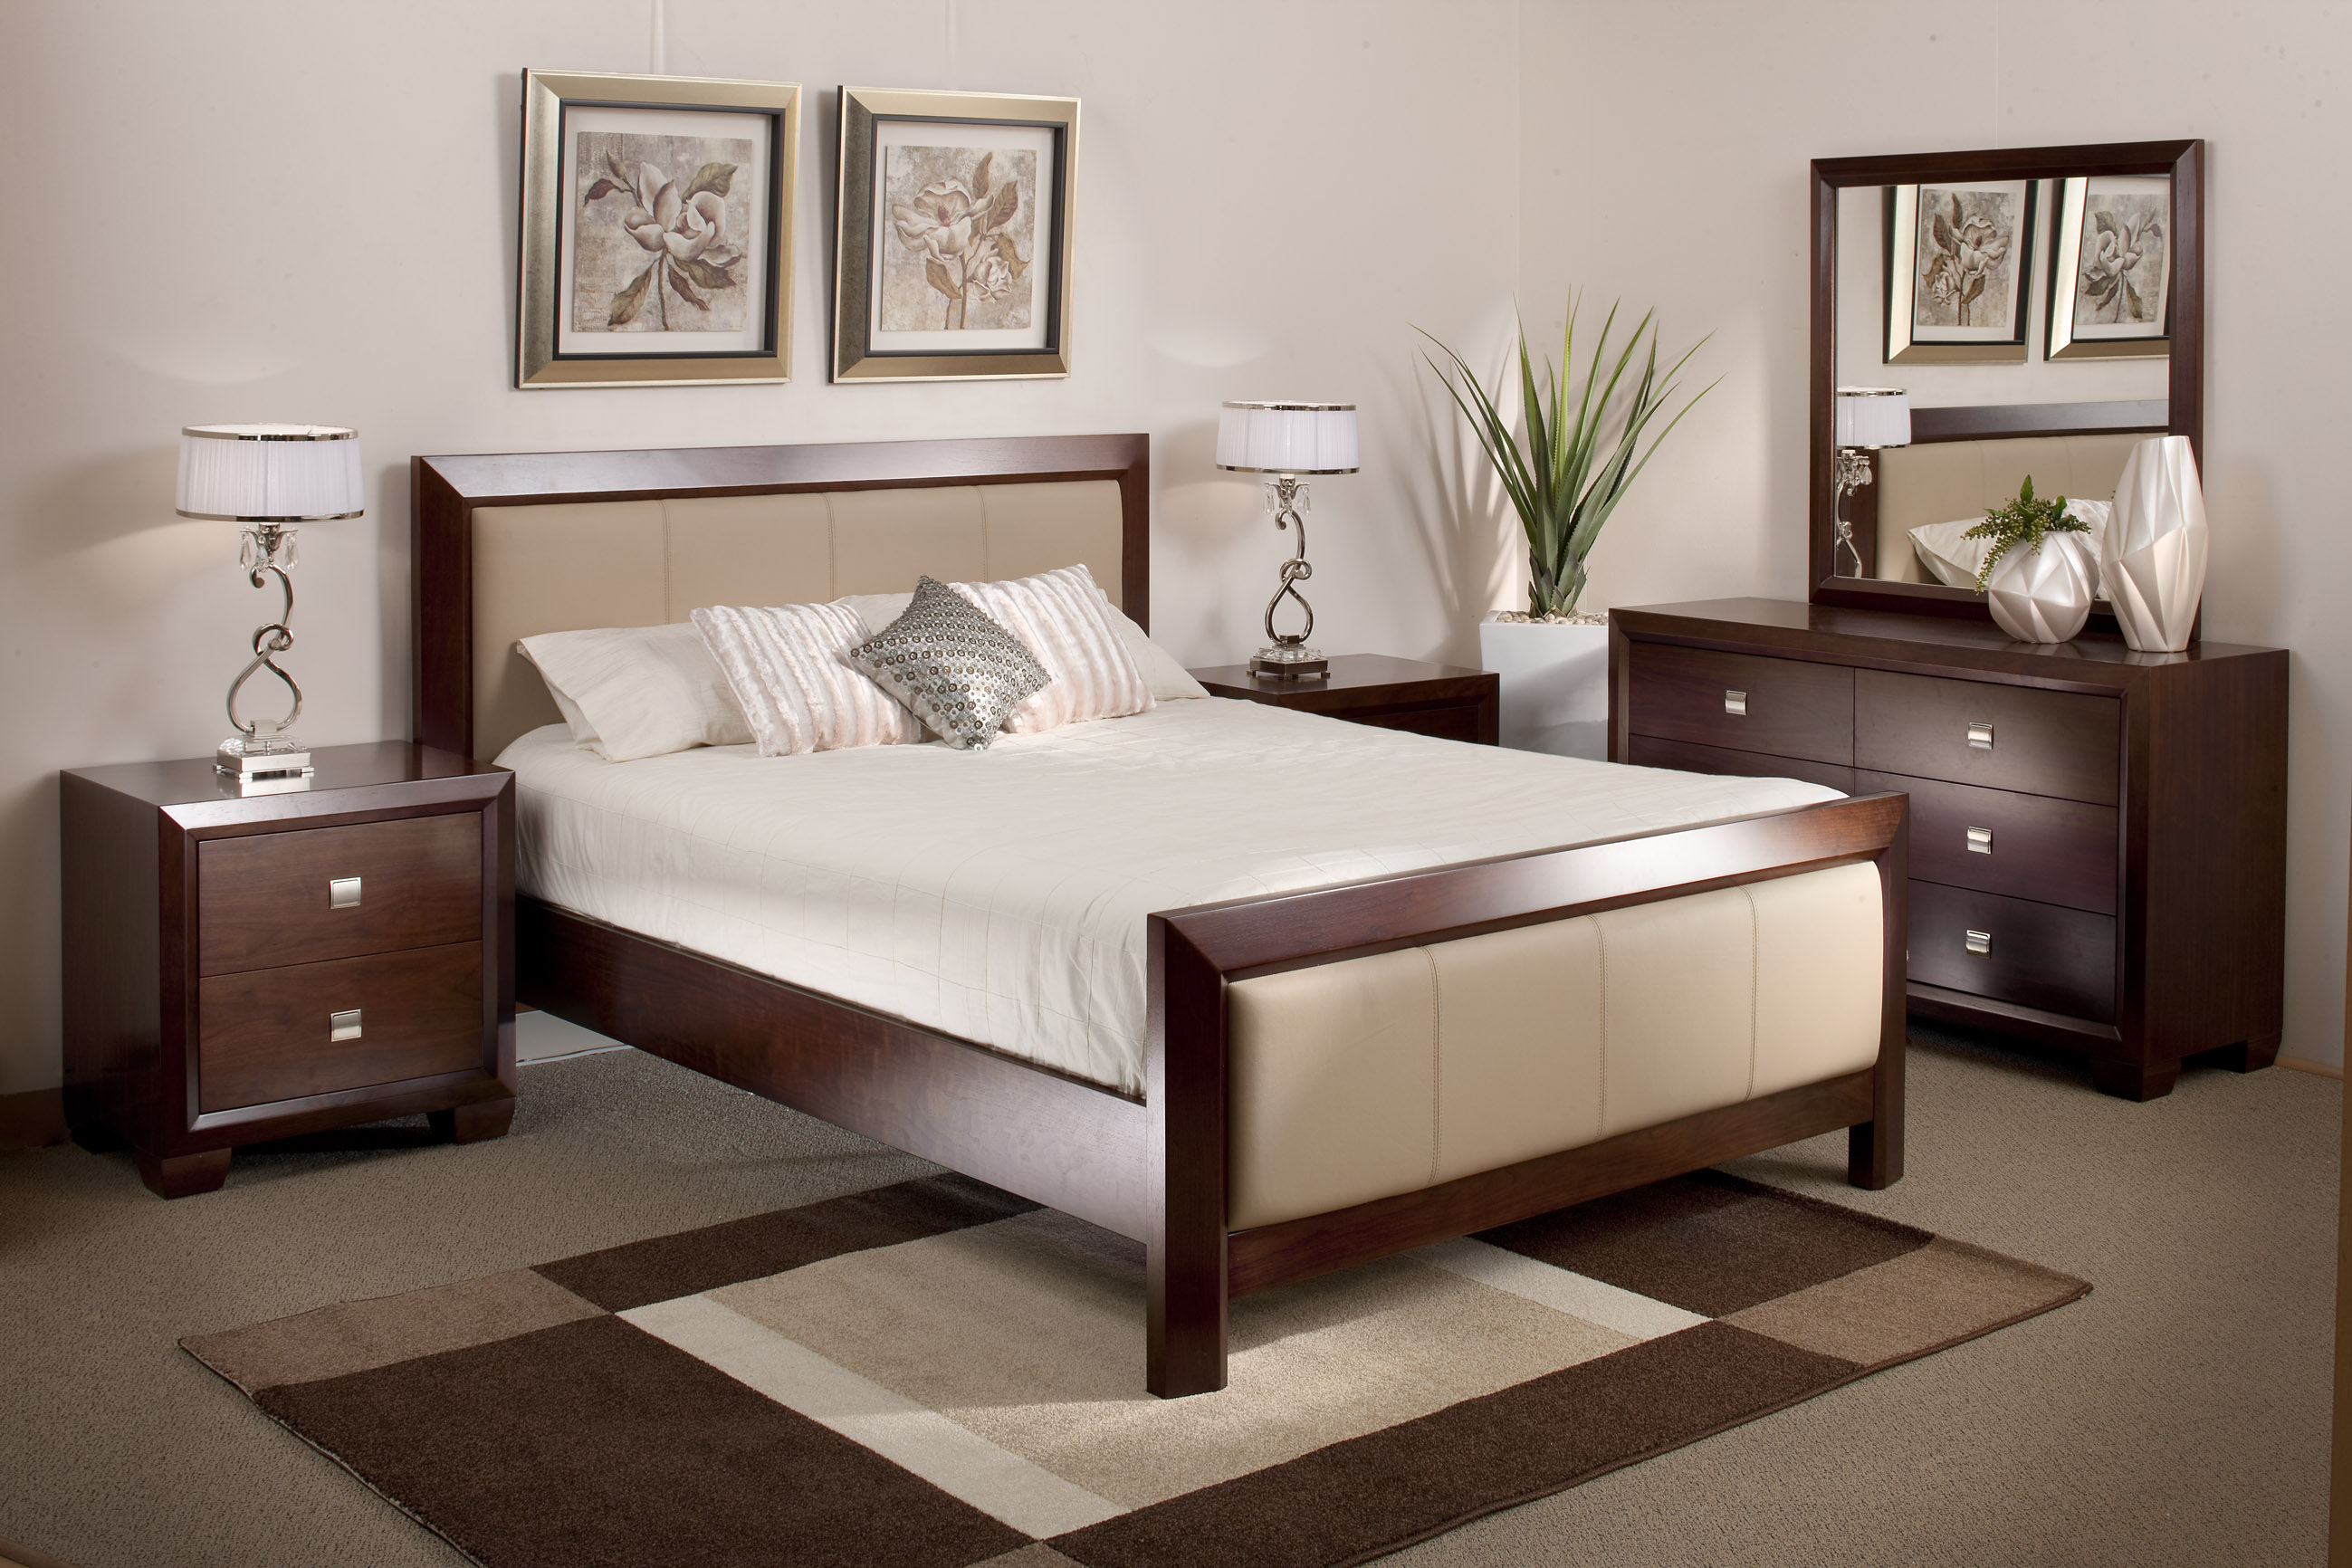 bedroom-furniture-7